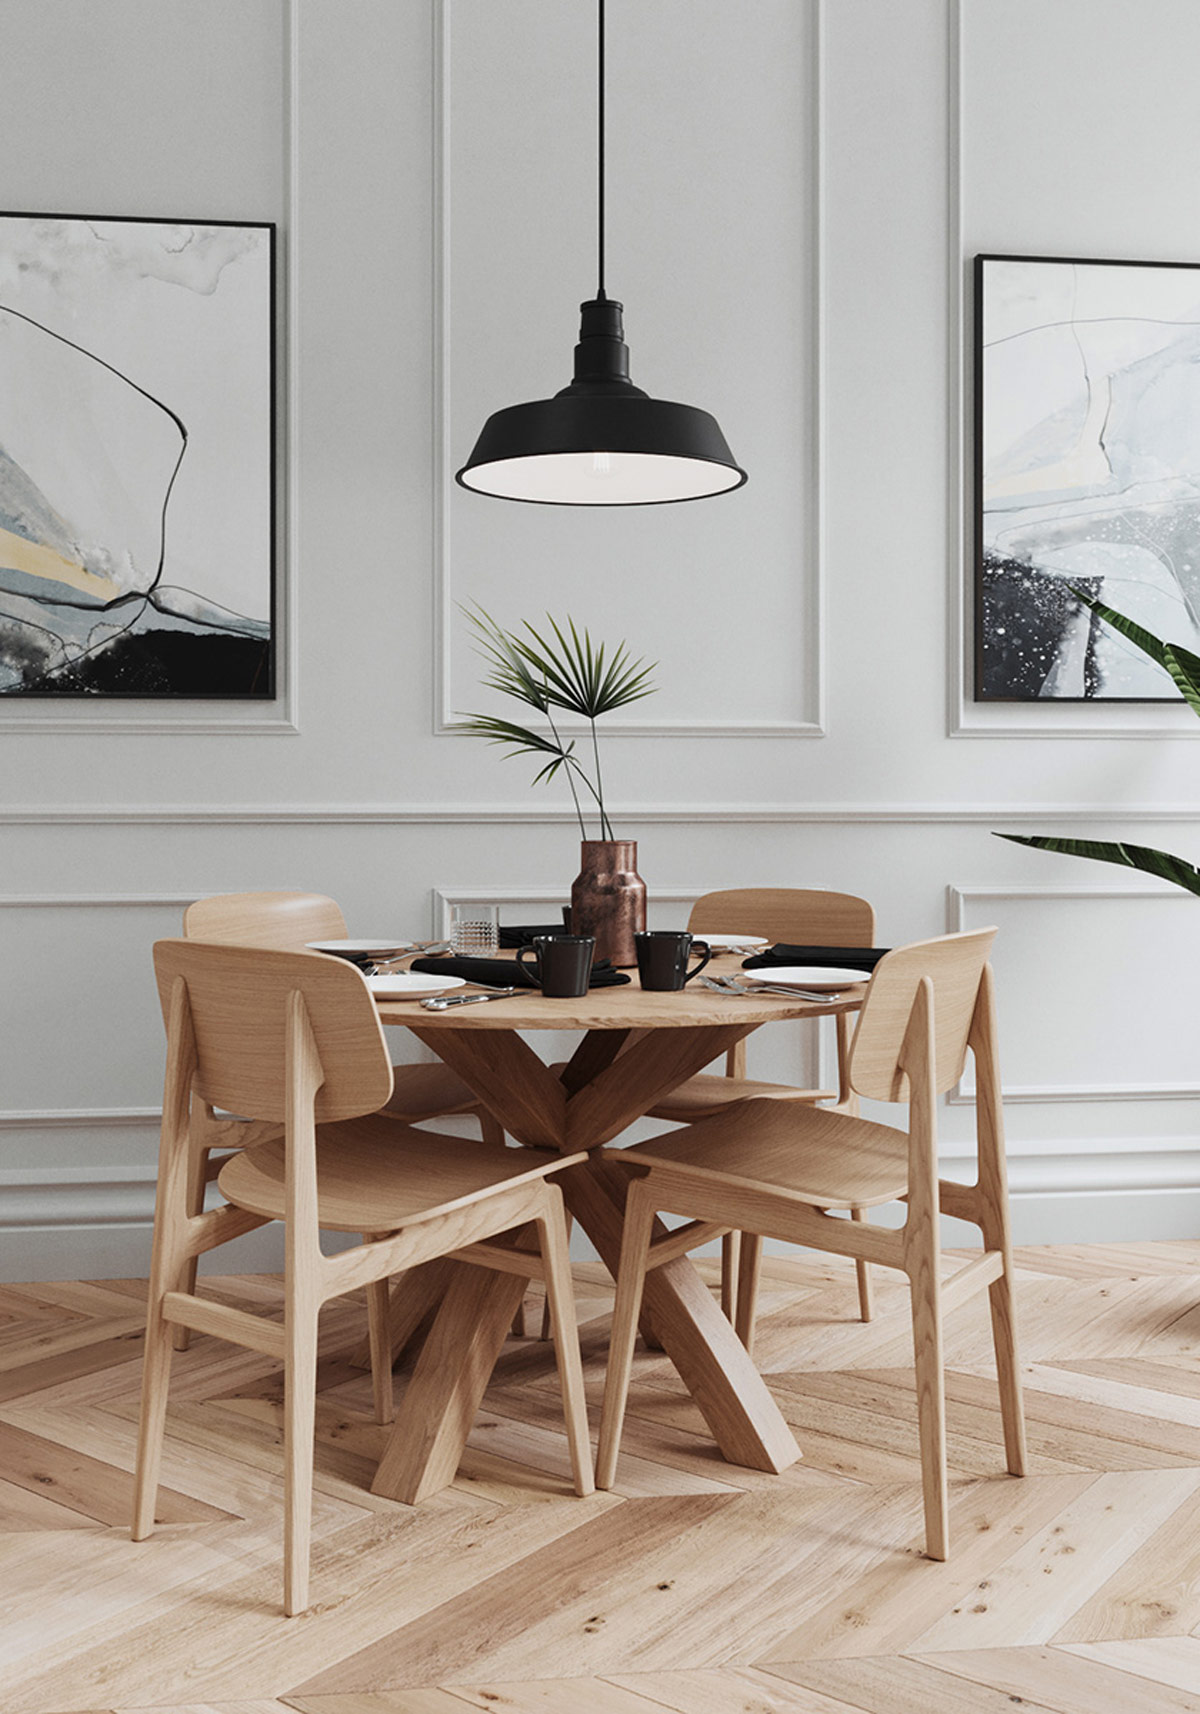 Home Designing Introducing Colour To A Base Of White Black Wood Tone Da Vinci Lifestyle